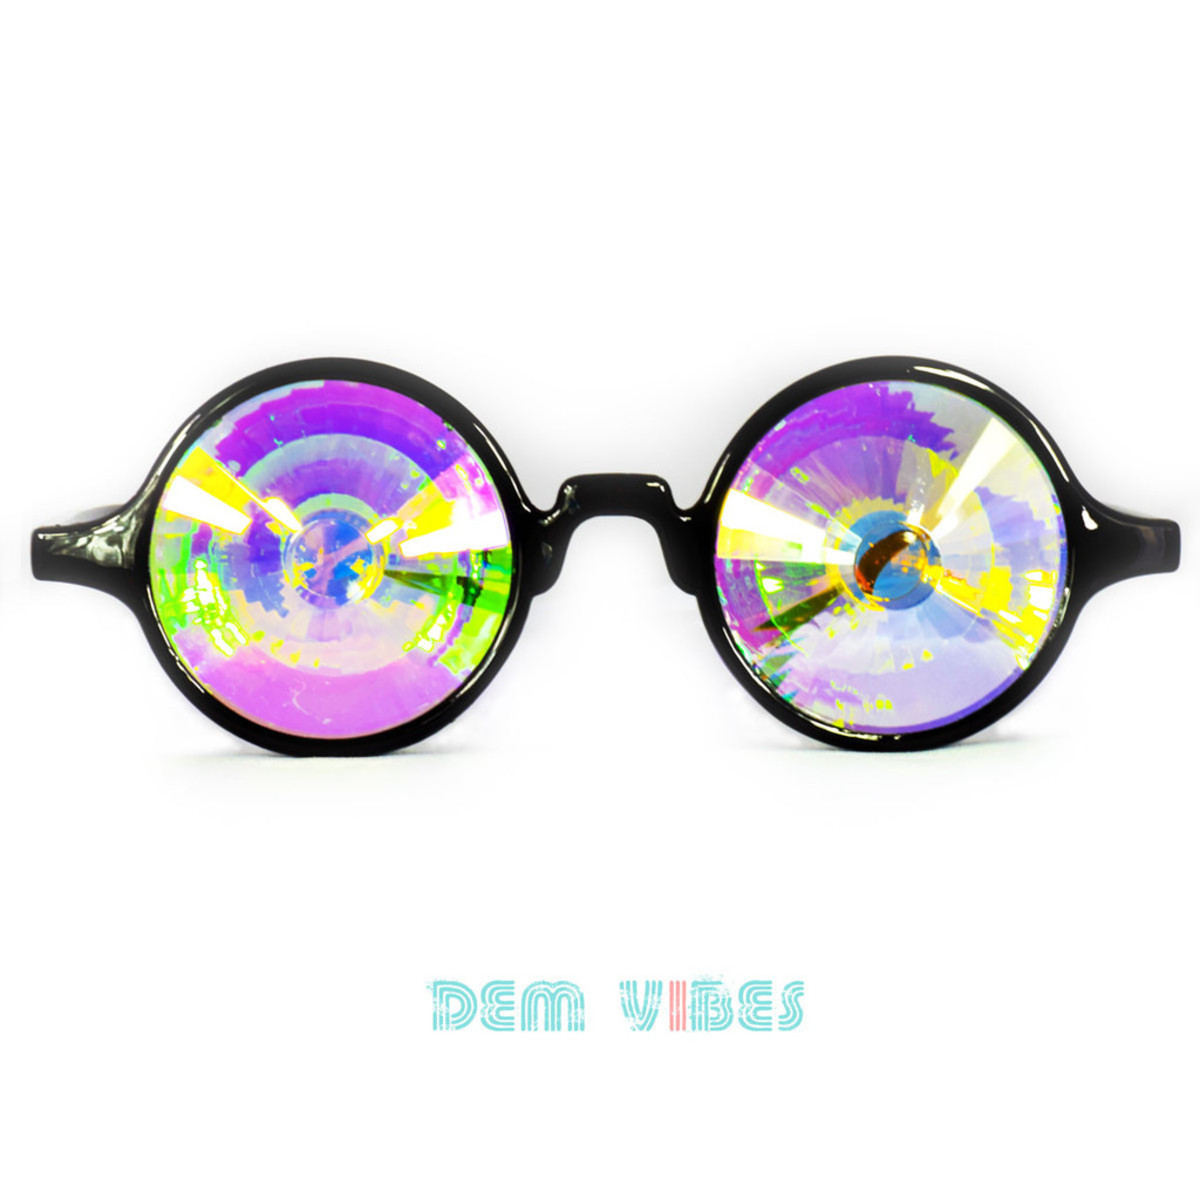 Dem Vibes Kaledoscope Glasses